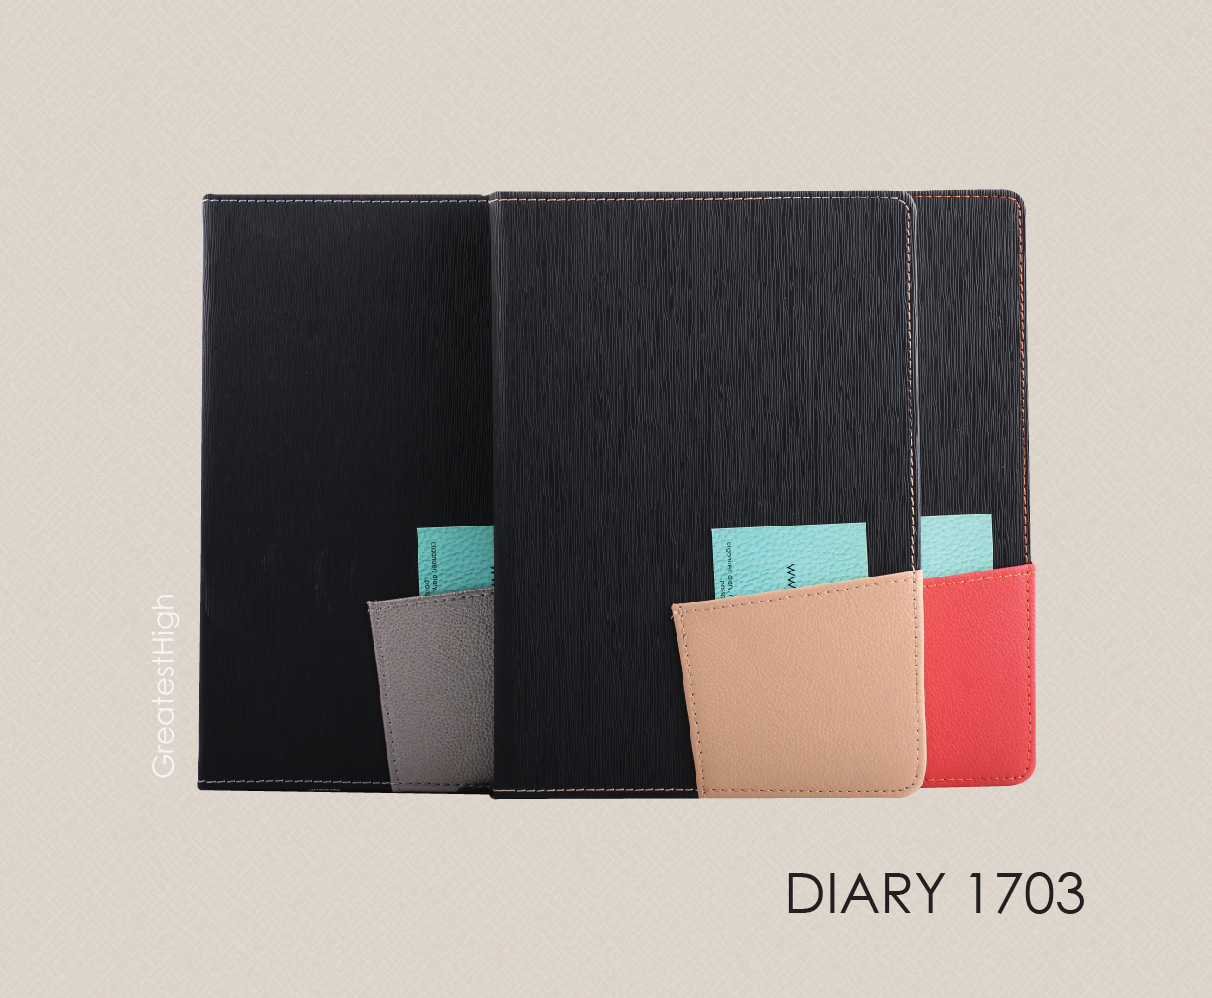 Diary no. DA 1703, Pick pocket